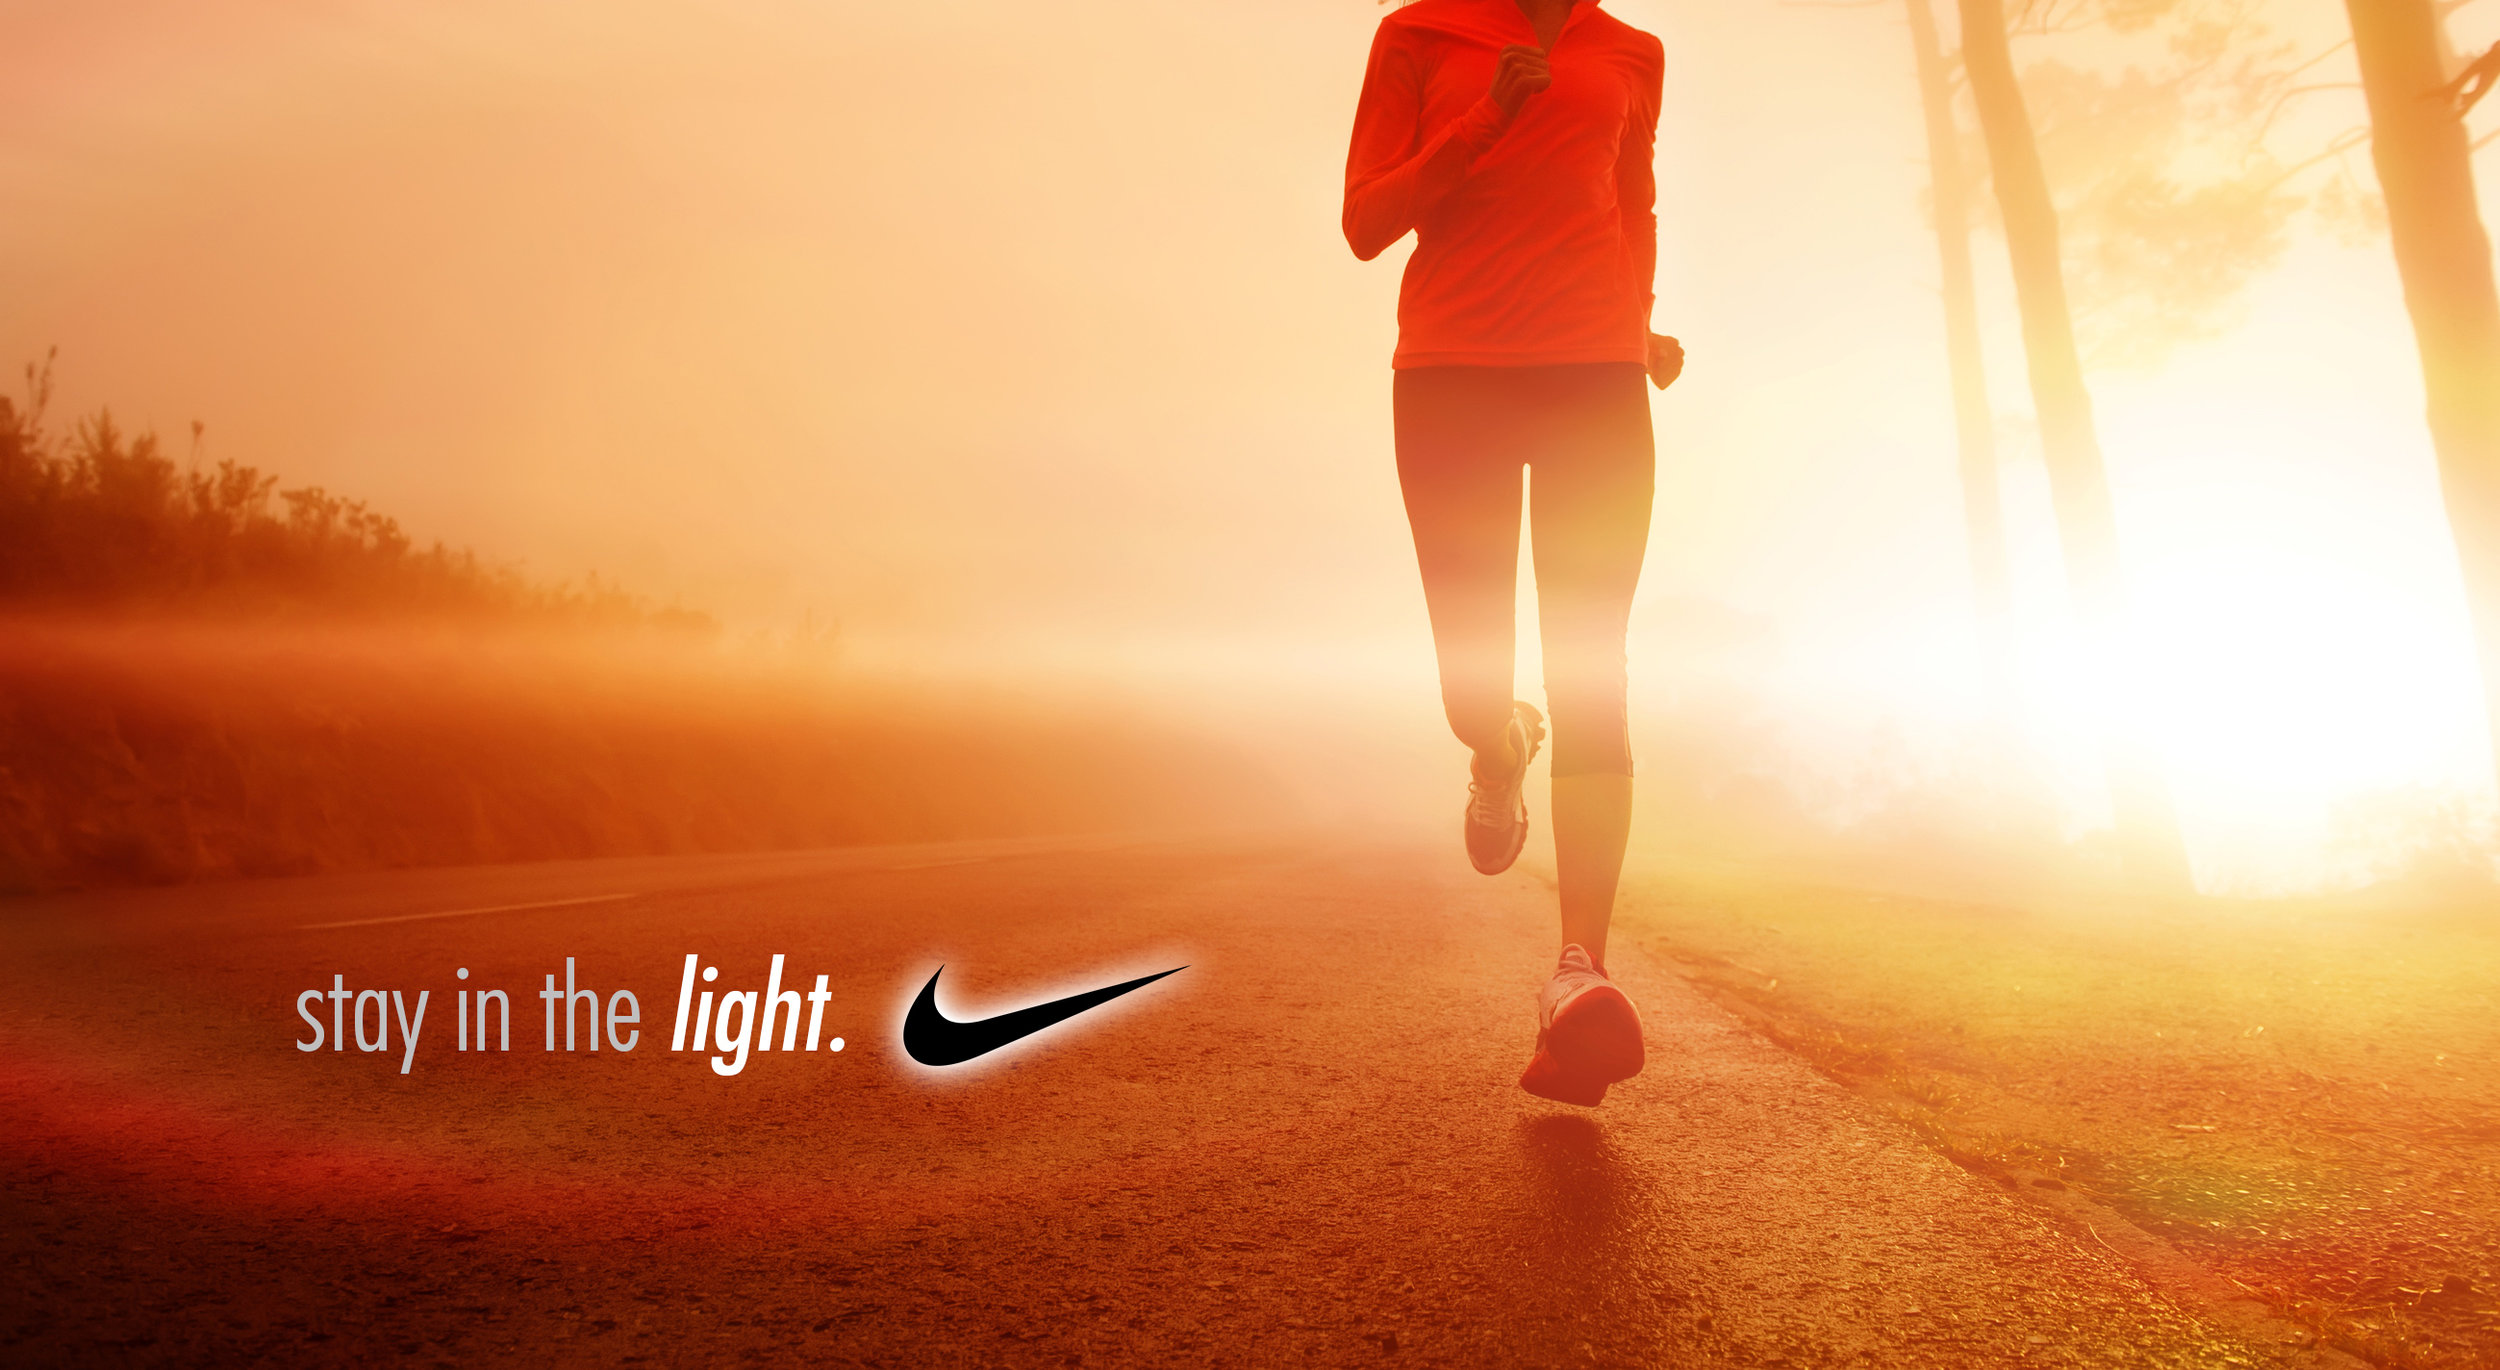 mel blanchard gong ad   nike_campaign_stay in the light_orange.jpg